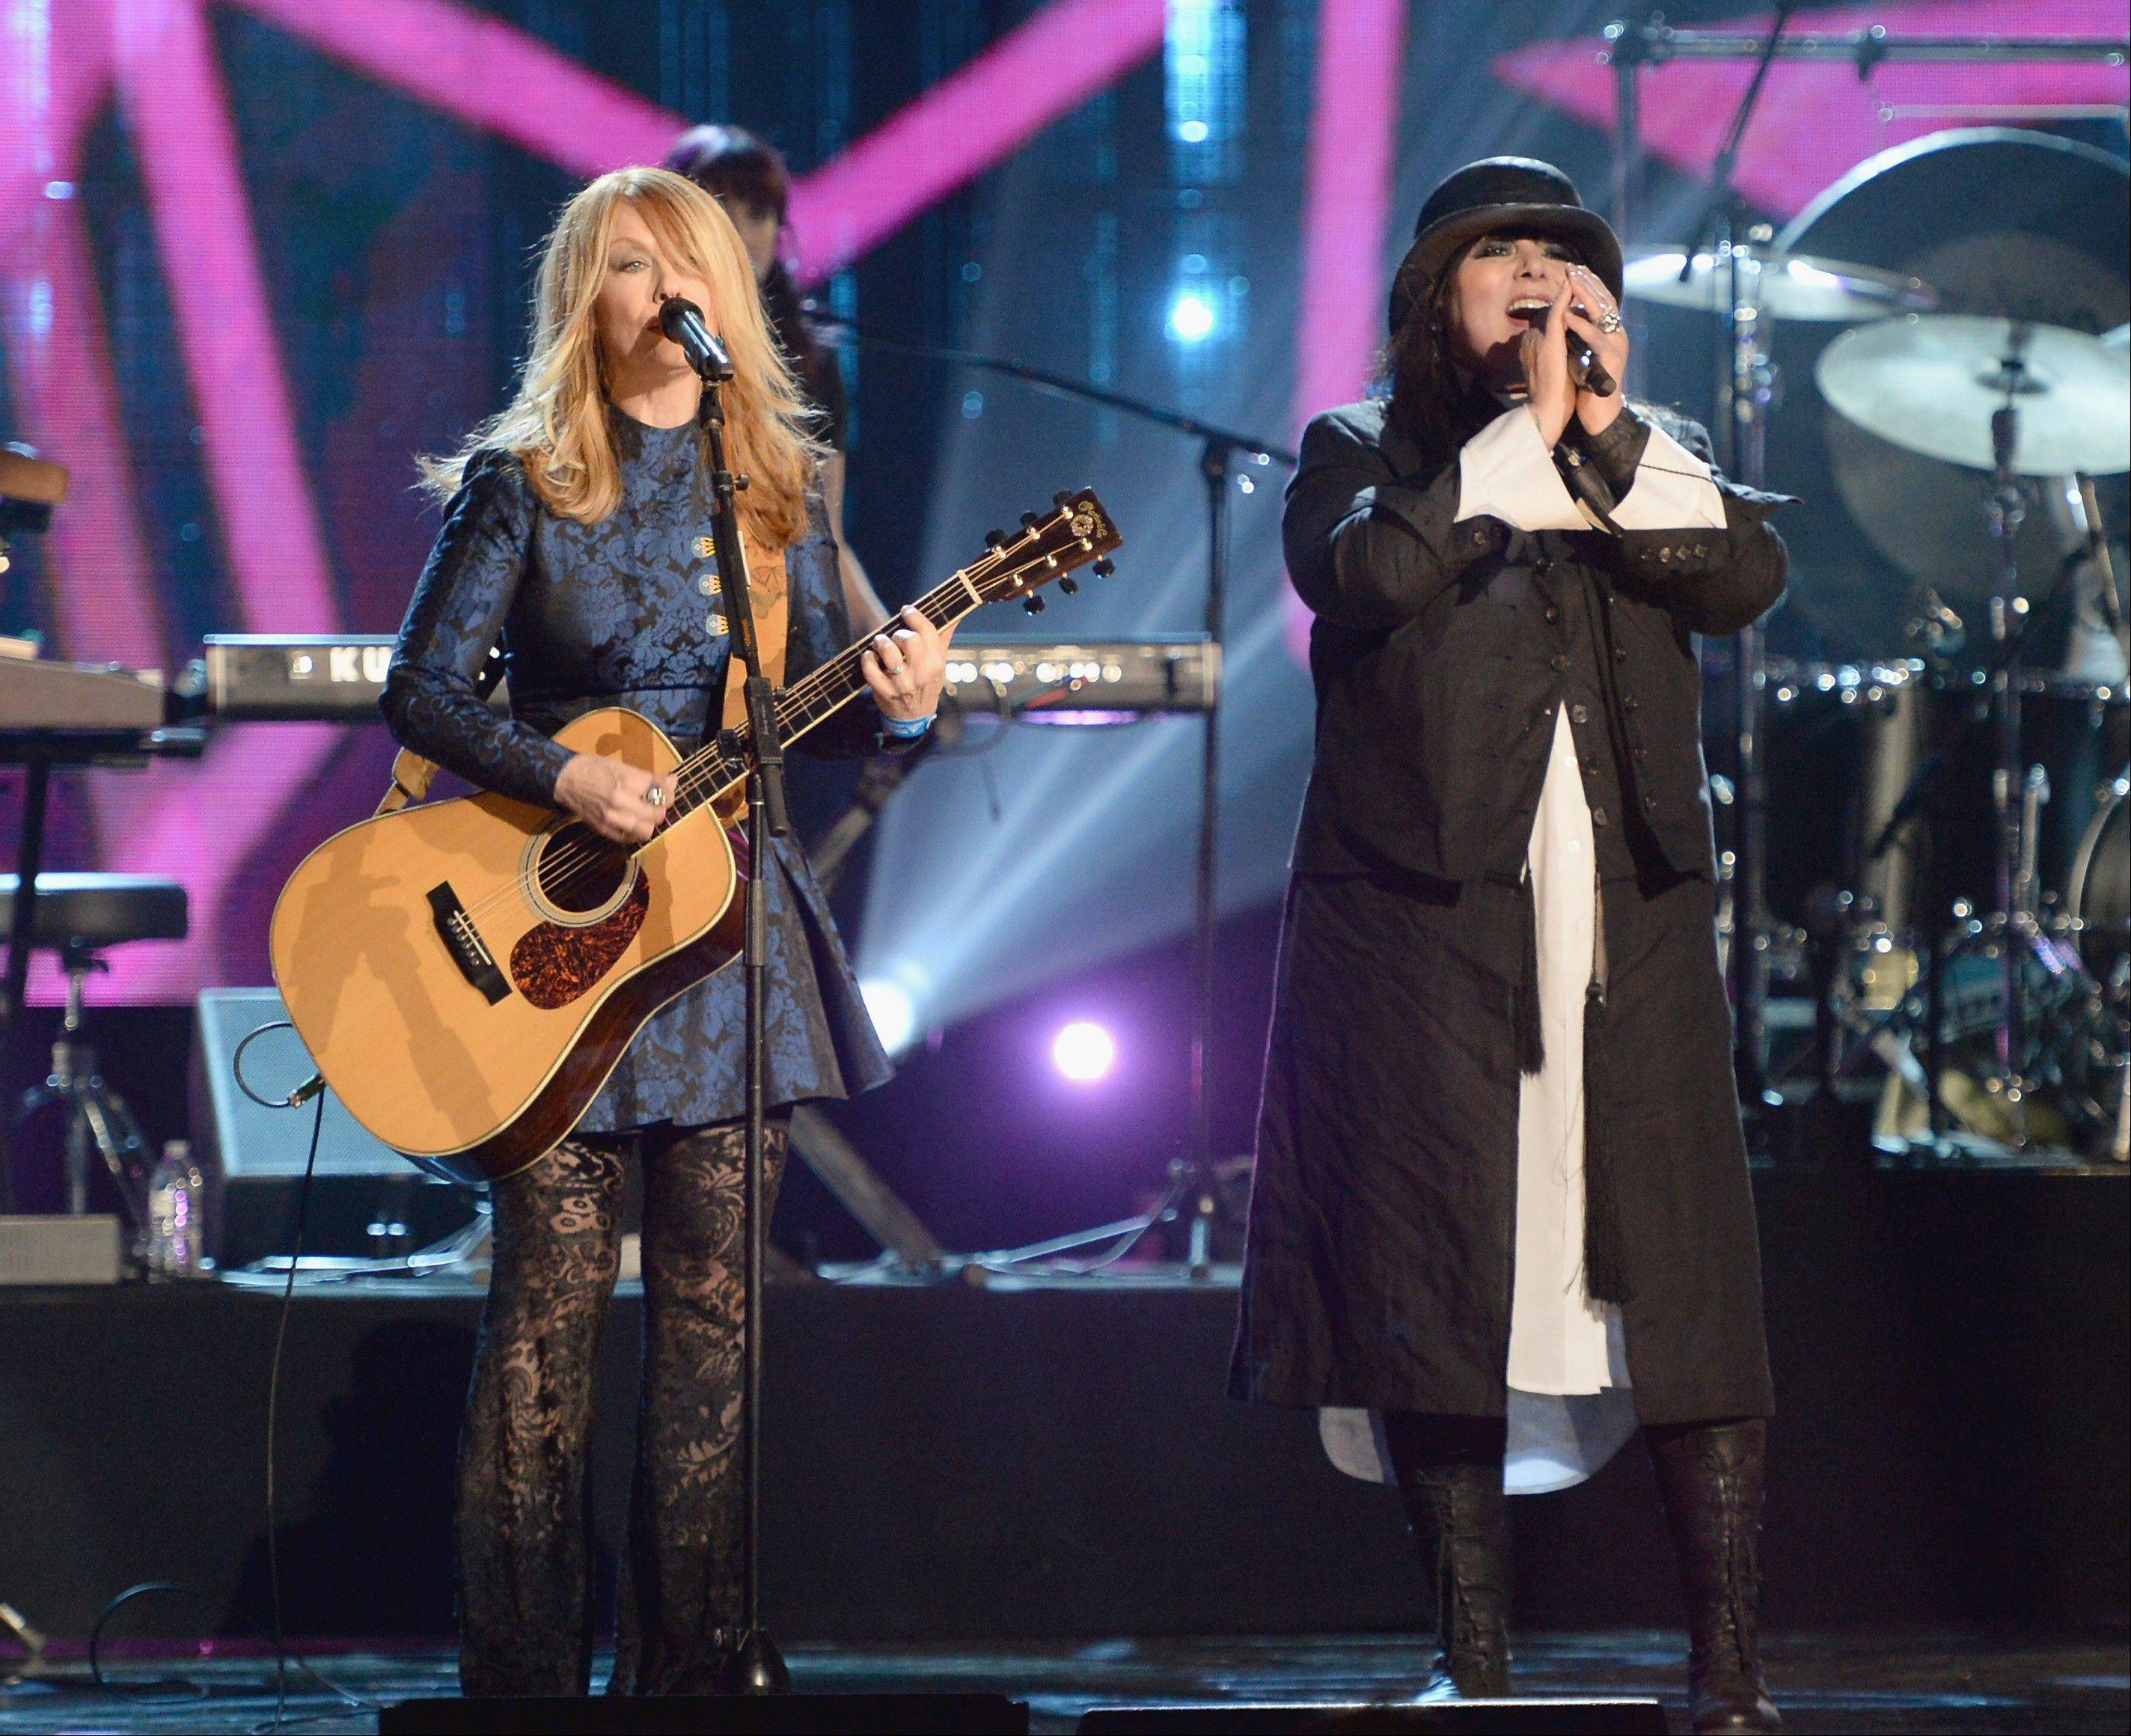 Inductees Nancy Wilson, left, and Ann Wilson of Heart perform onstage during the 28th Annual Rock and Roll Hall of Fame Induction Ceremony in Los Angeles. The ceremony will air May 18 on HBO.